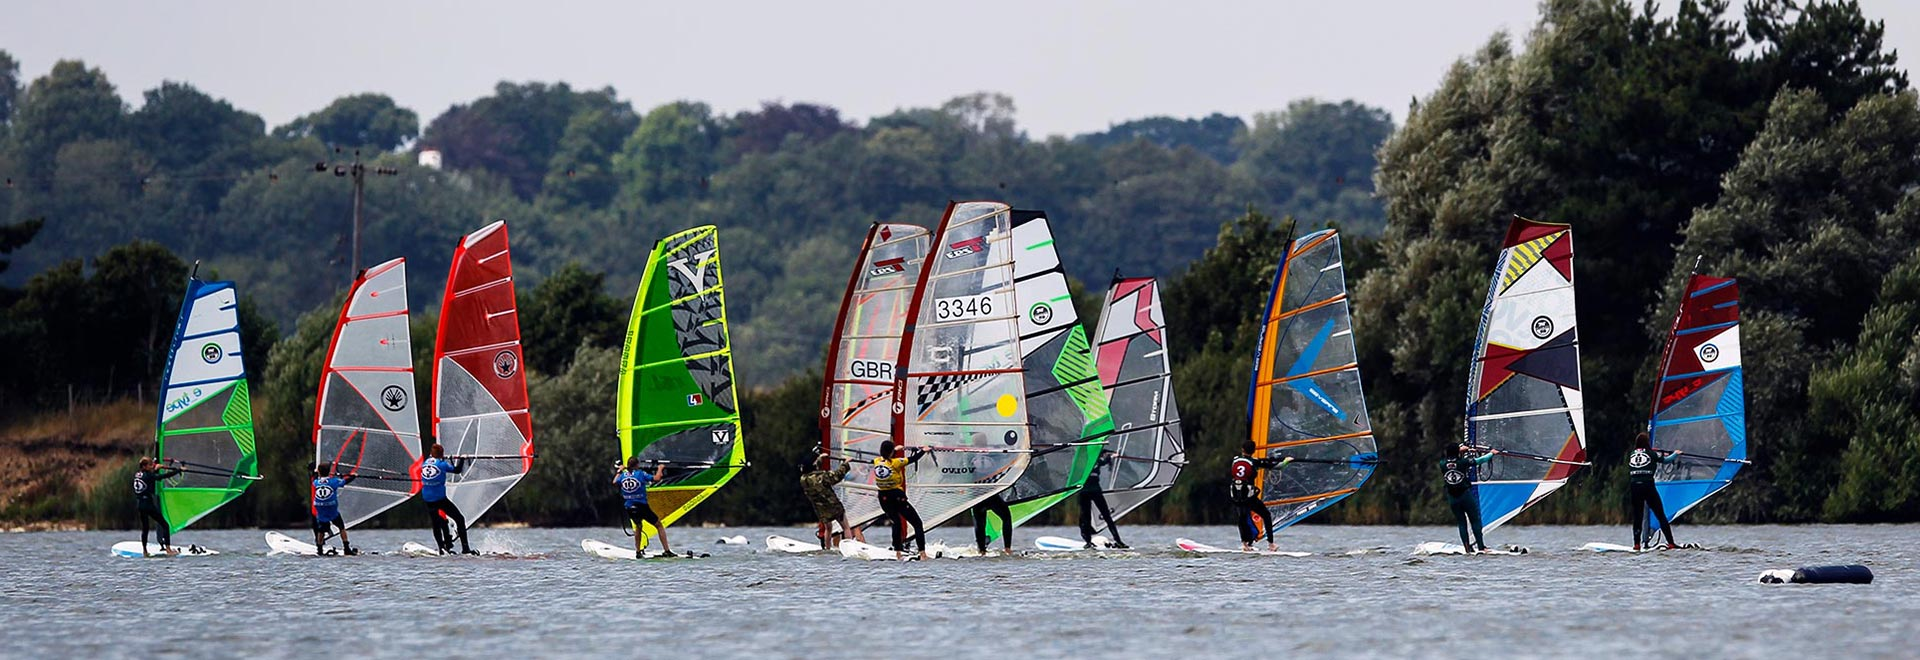 windsurf racers rywatersports